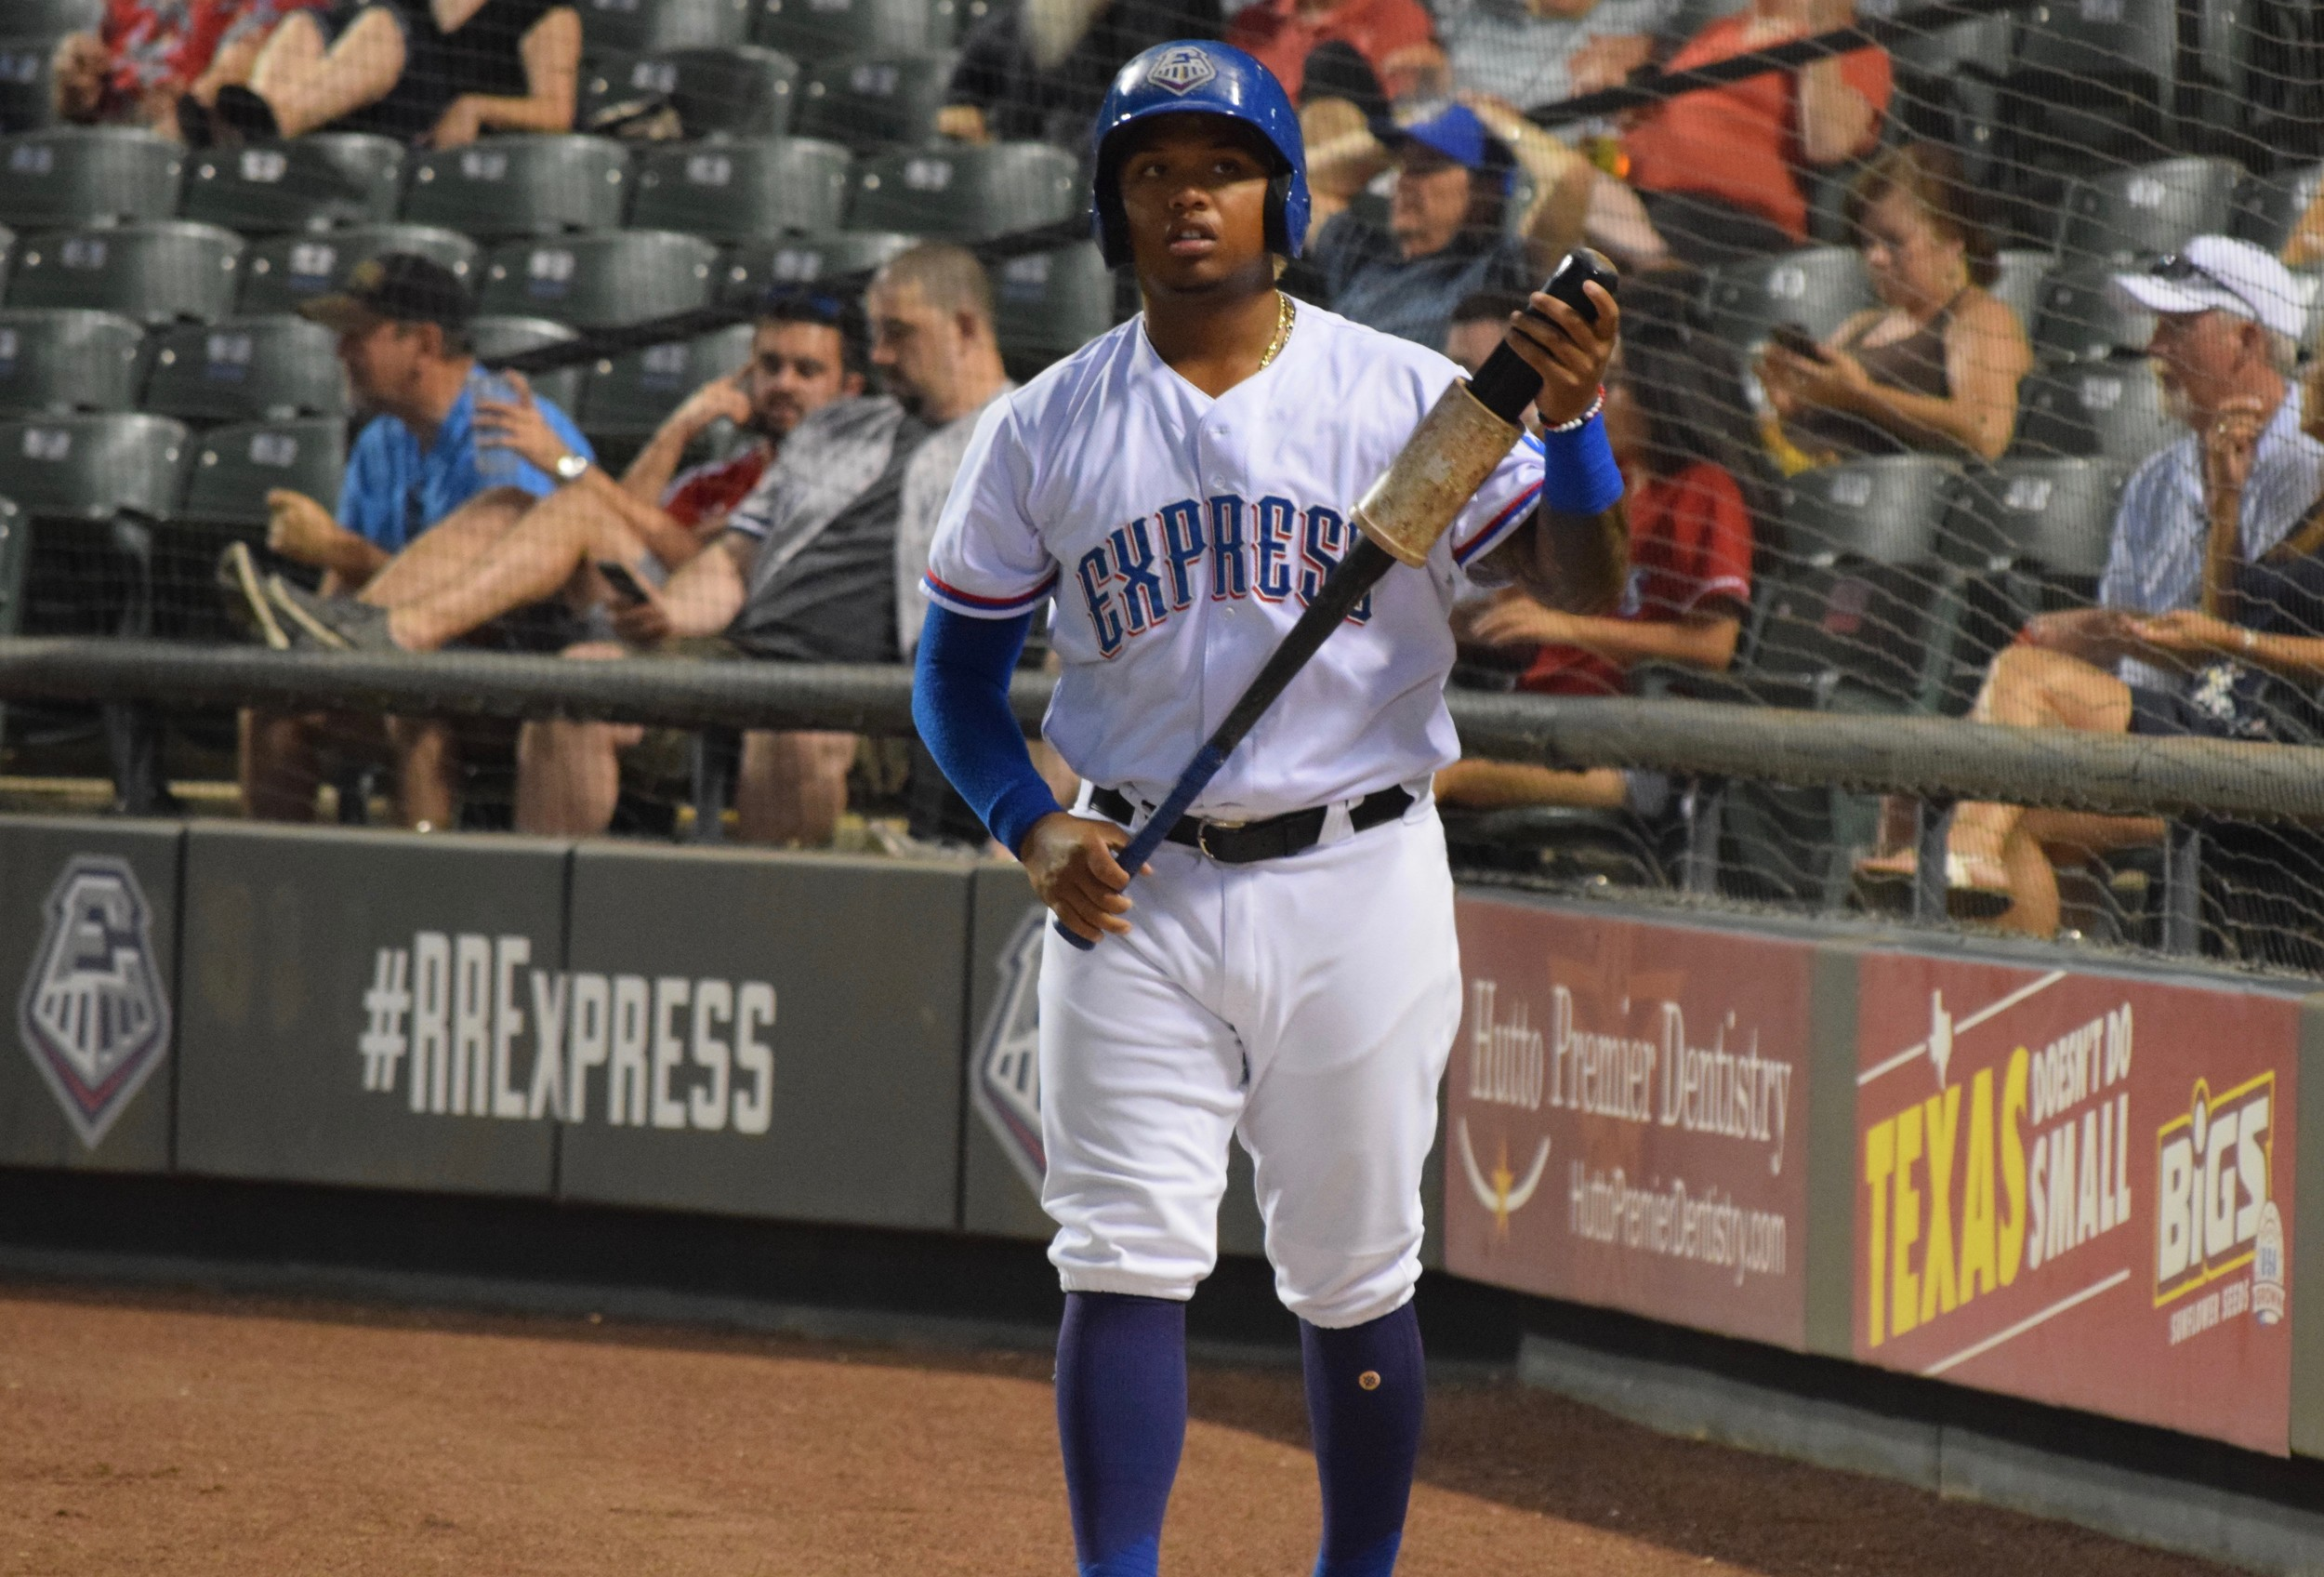 Willie Calhoun hit a walk-off grand slam and the Express beat the Dodgers 10-9 on Sunday night.